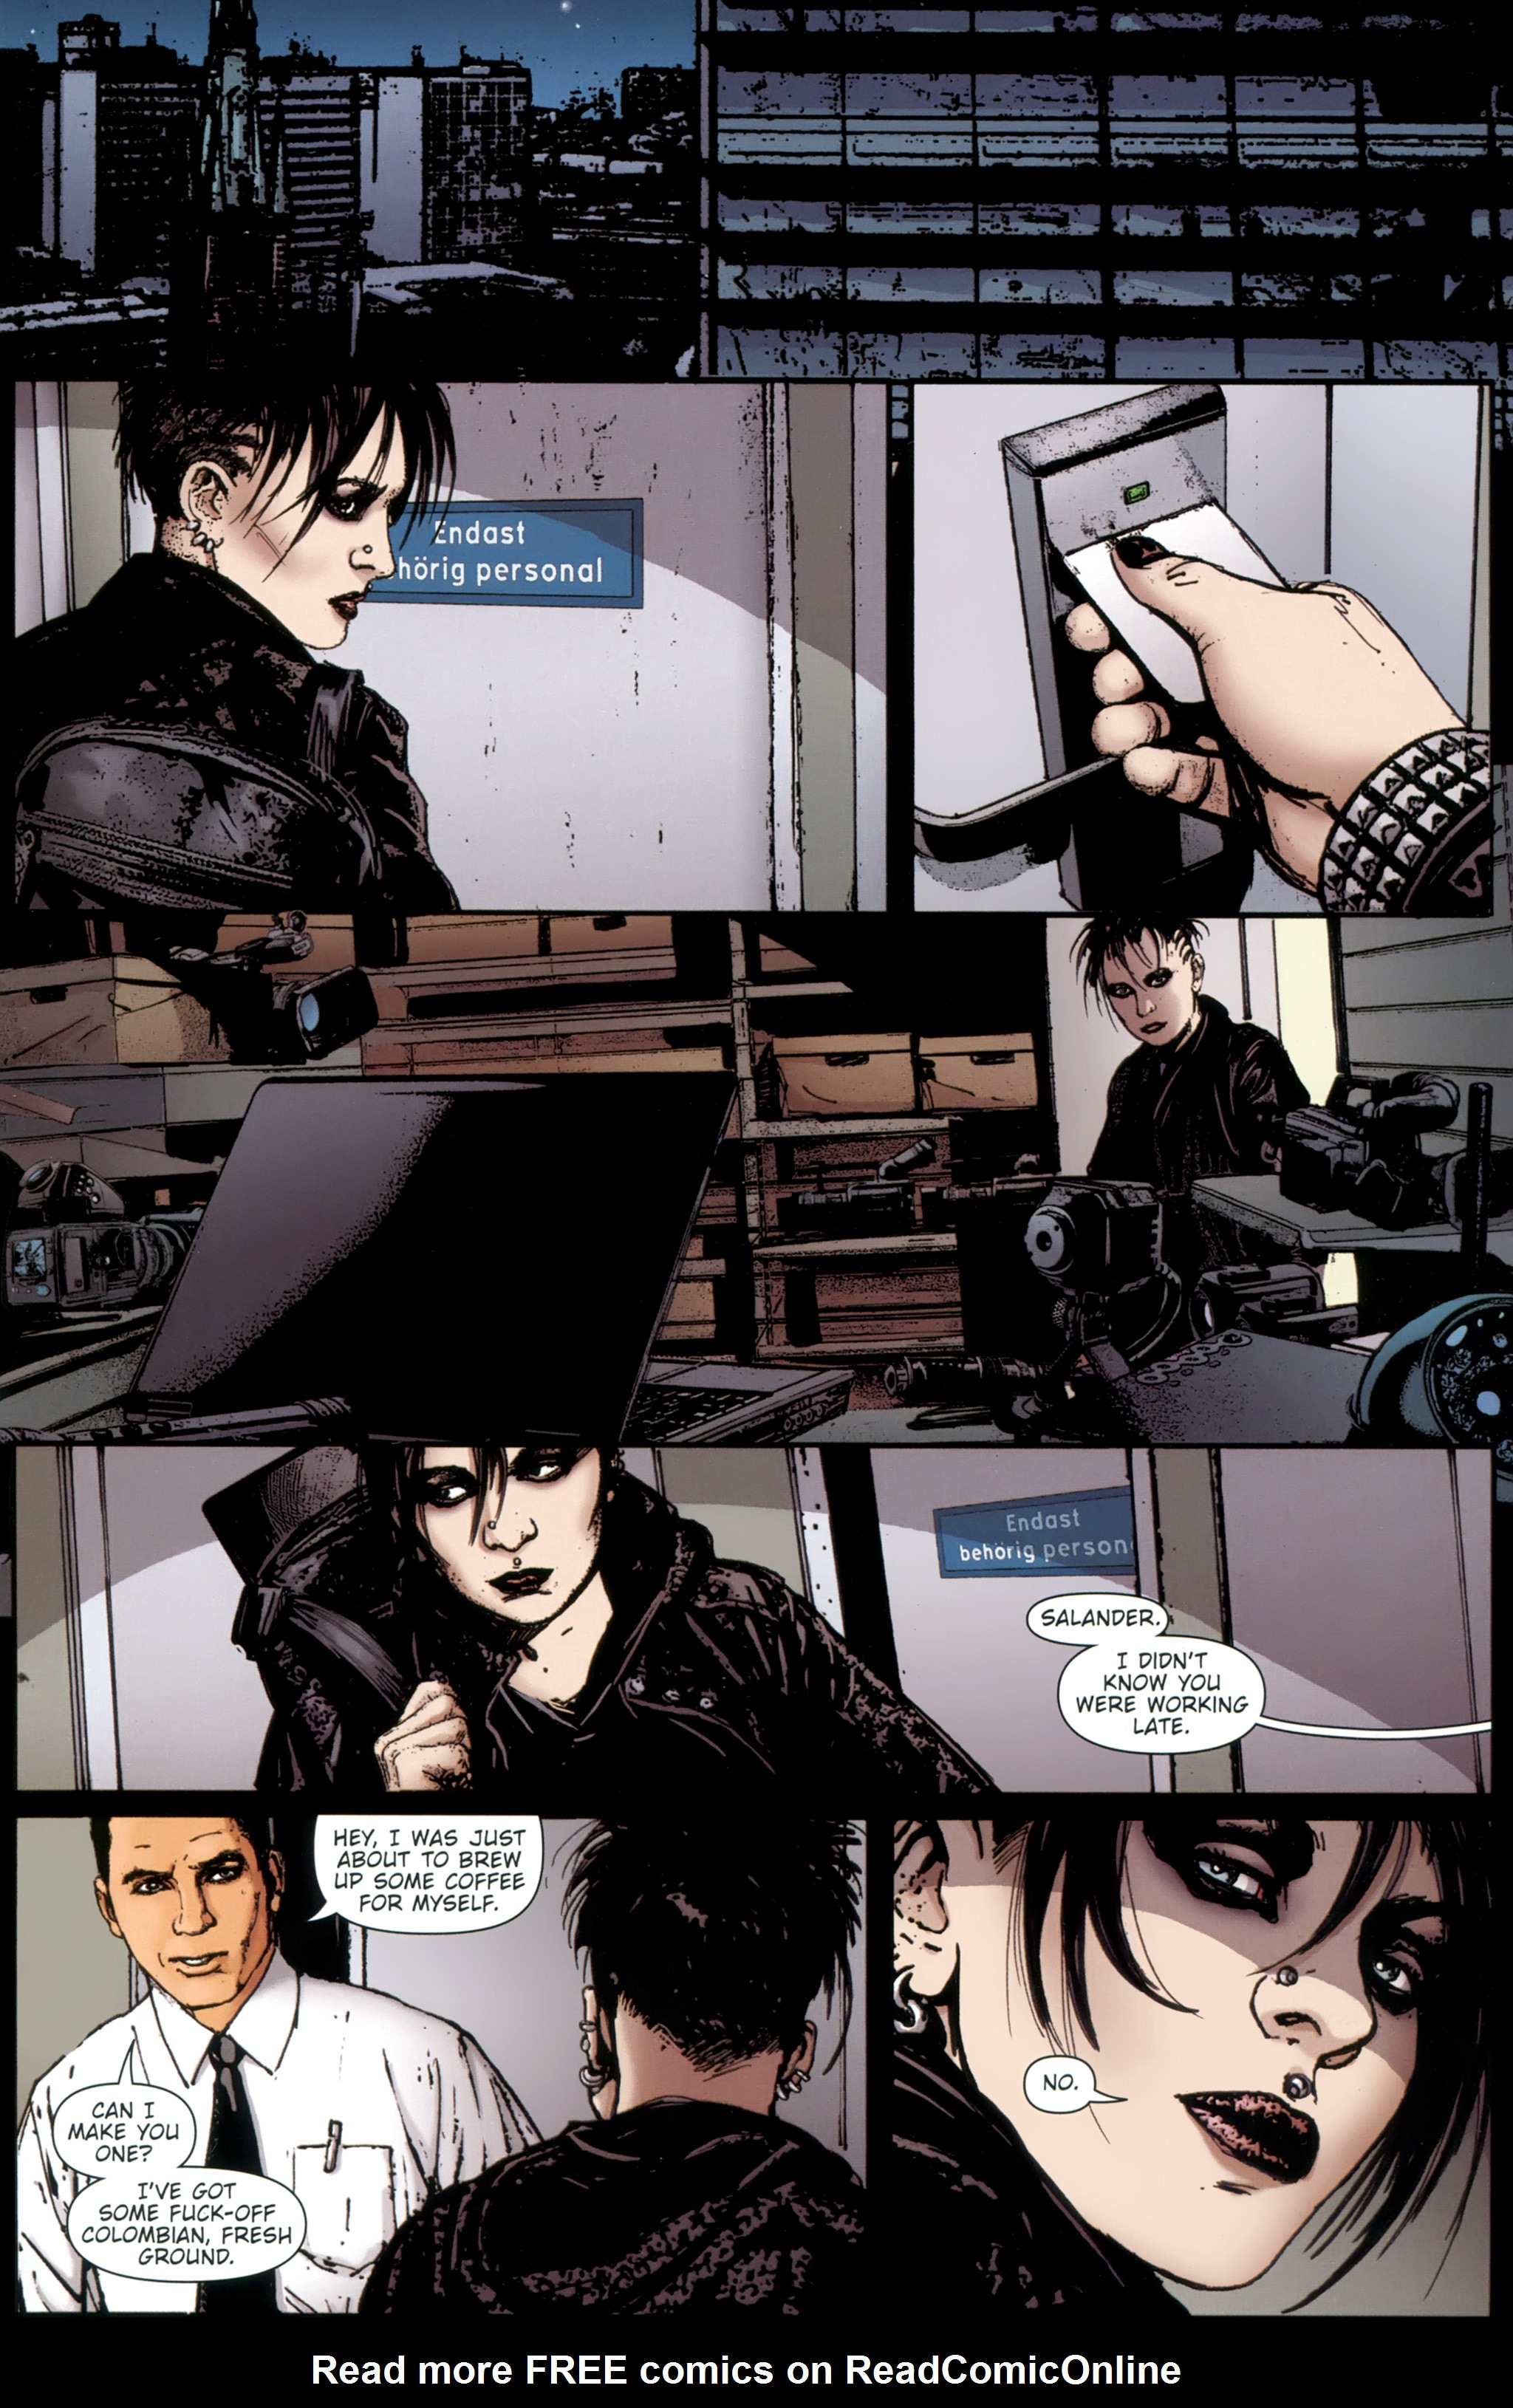 Read online The Girl With the Dragon Tattoo comic -  Issue # TPB 1 - 114